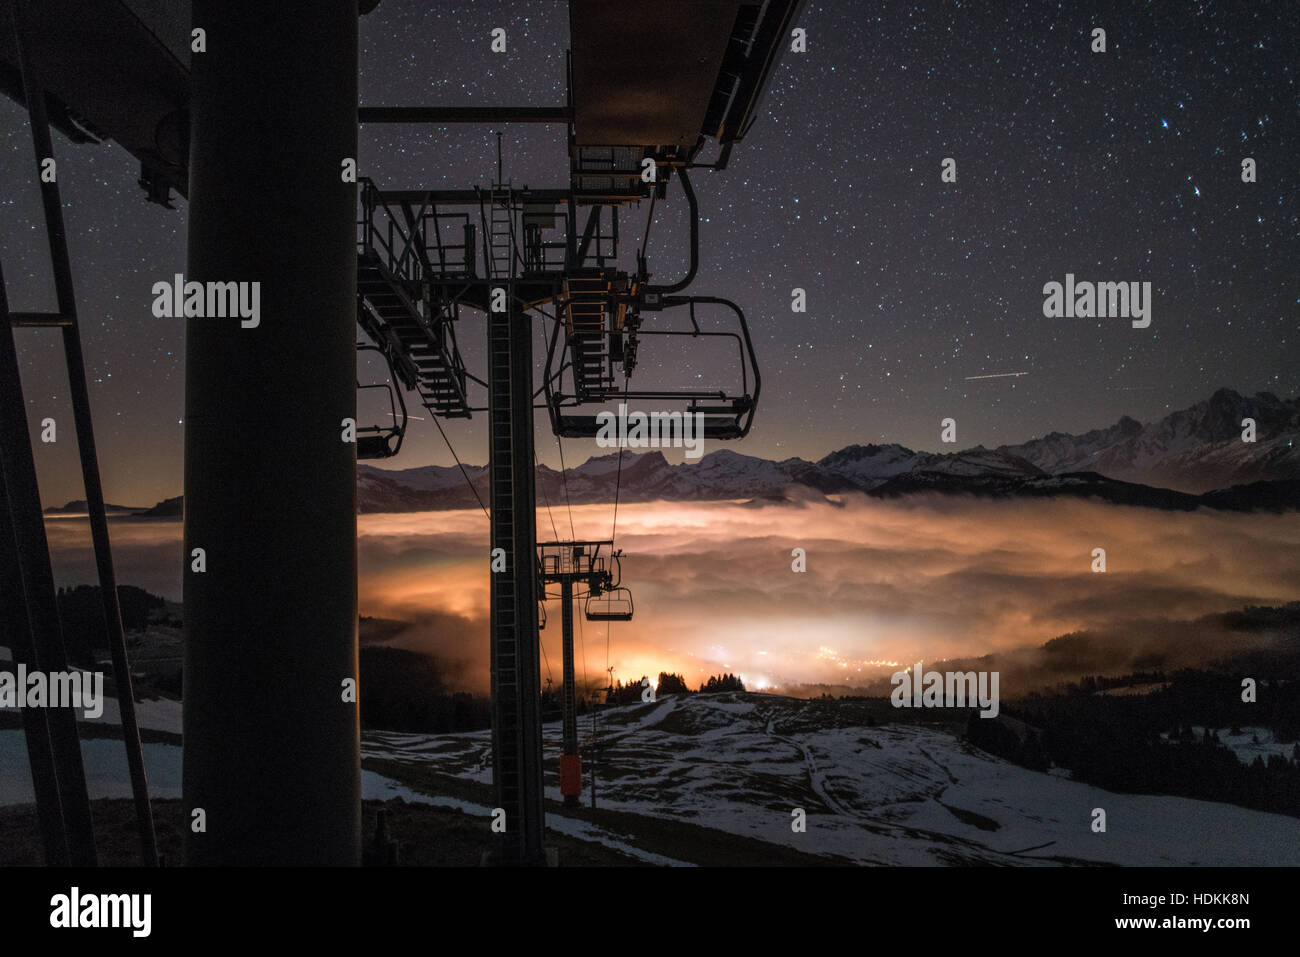 Ski resort of Saint Gervais Mont Blanc by night - Stock Image